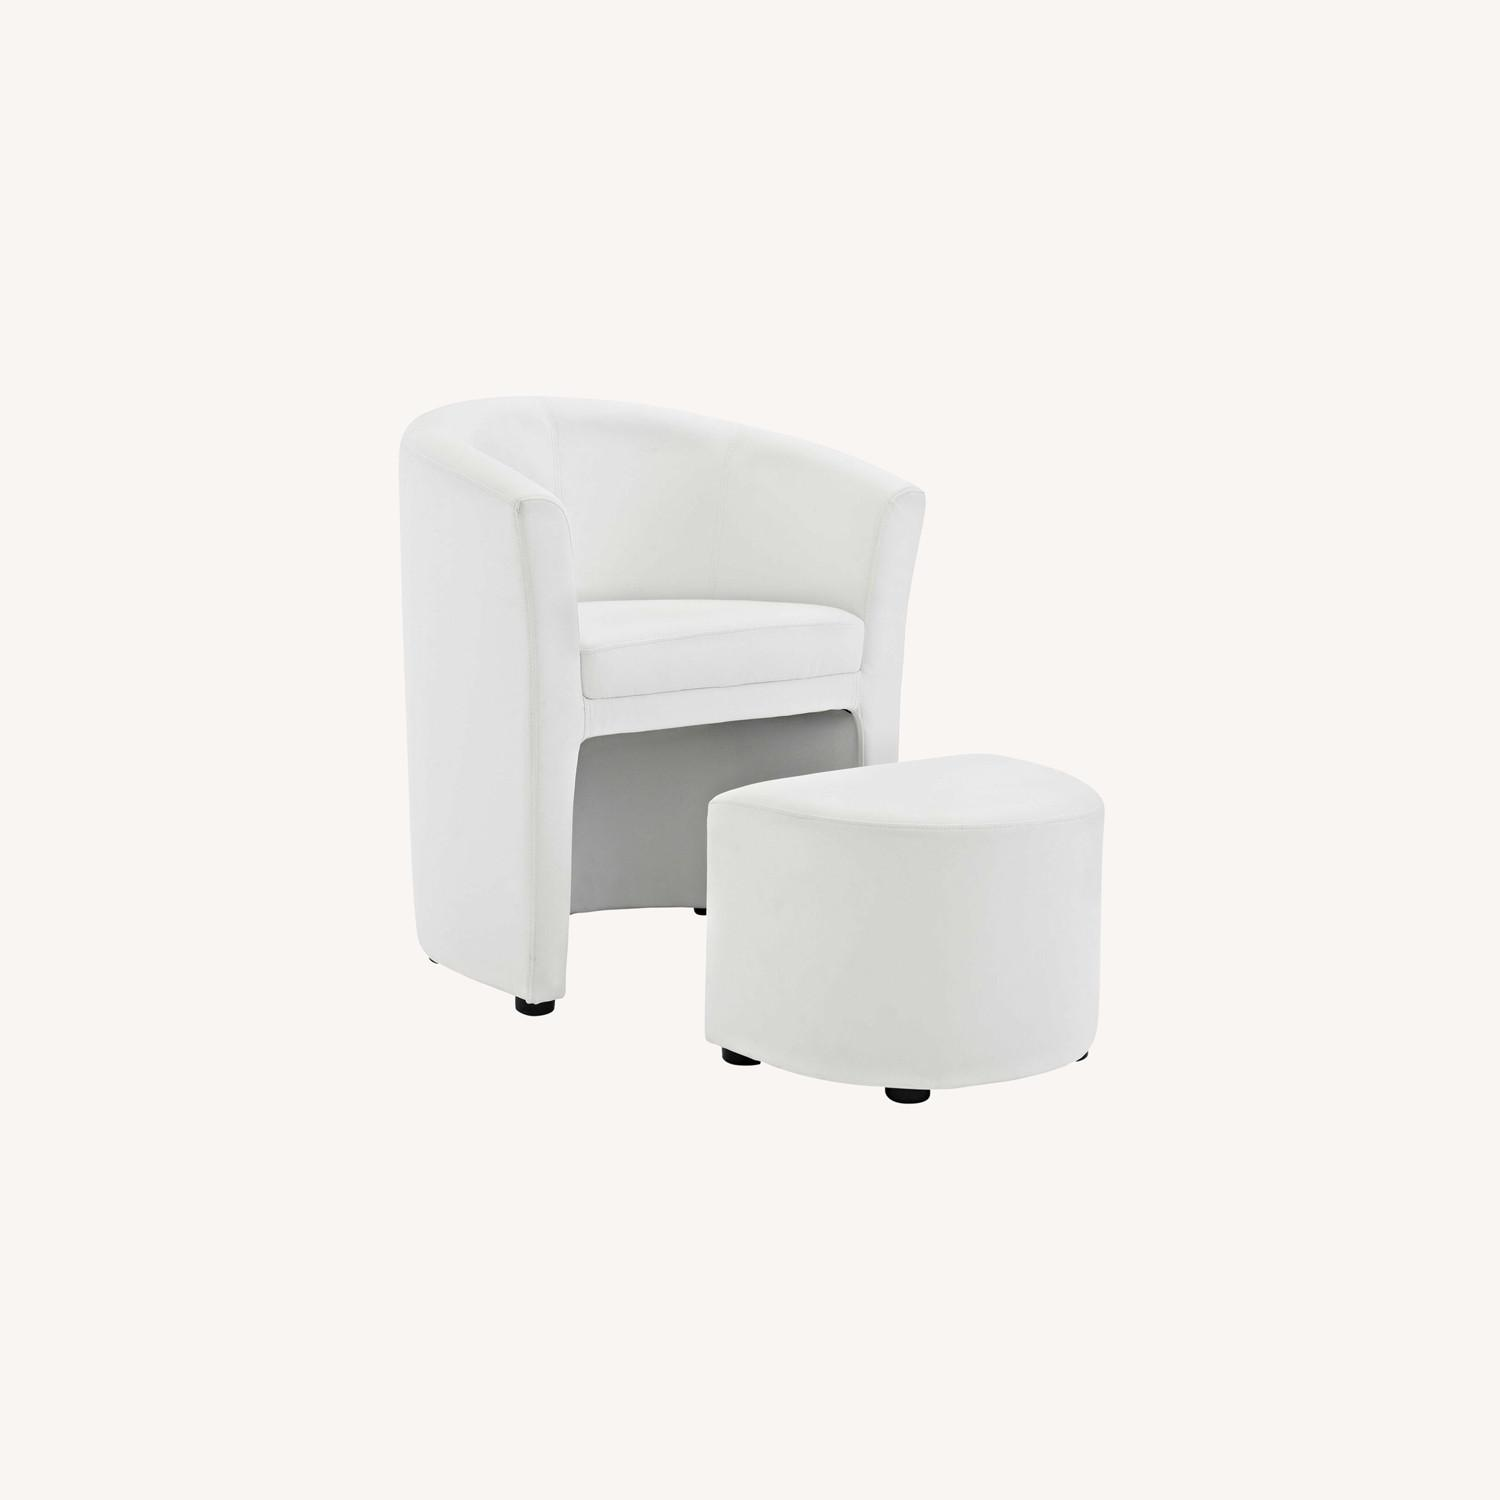 Armchair & Ottoman In White Color Upholstery - image-6